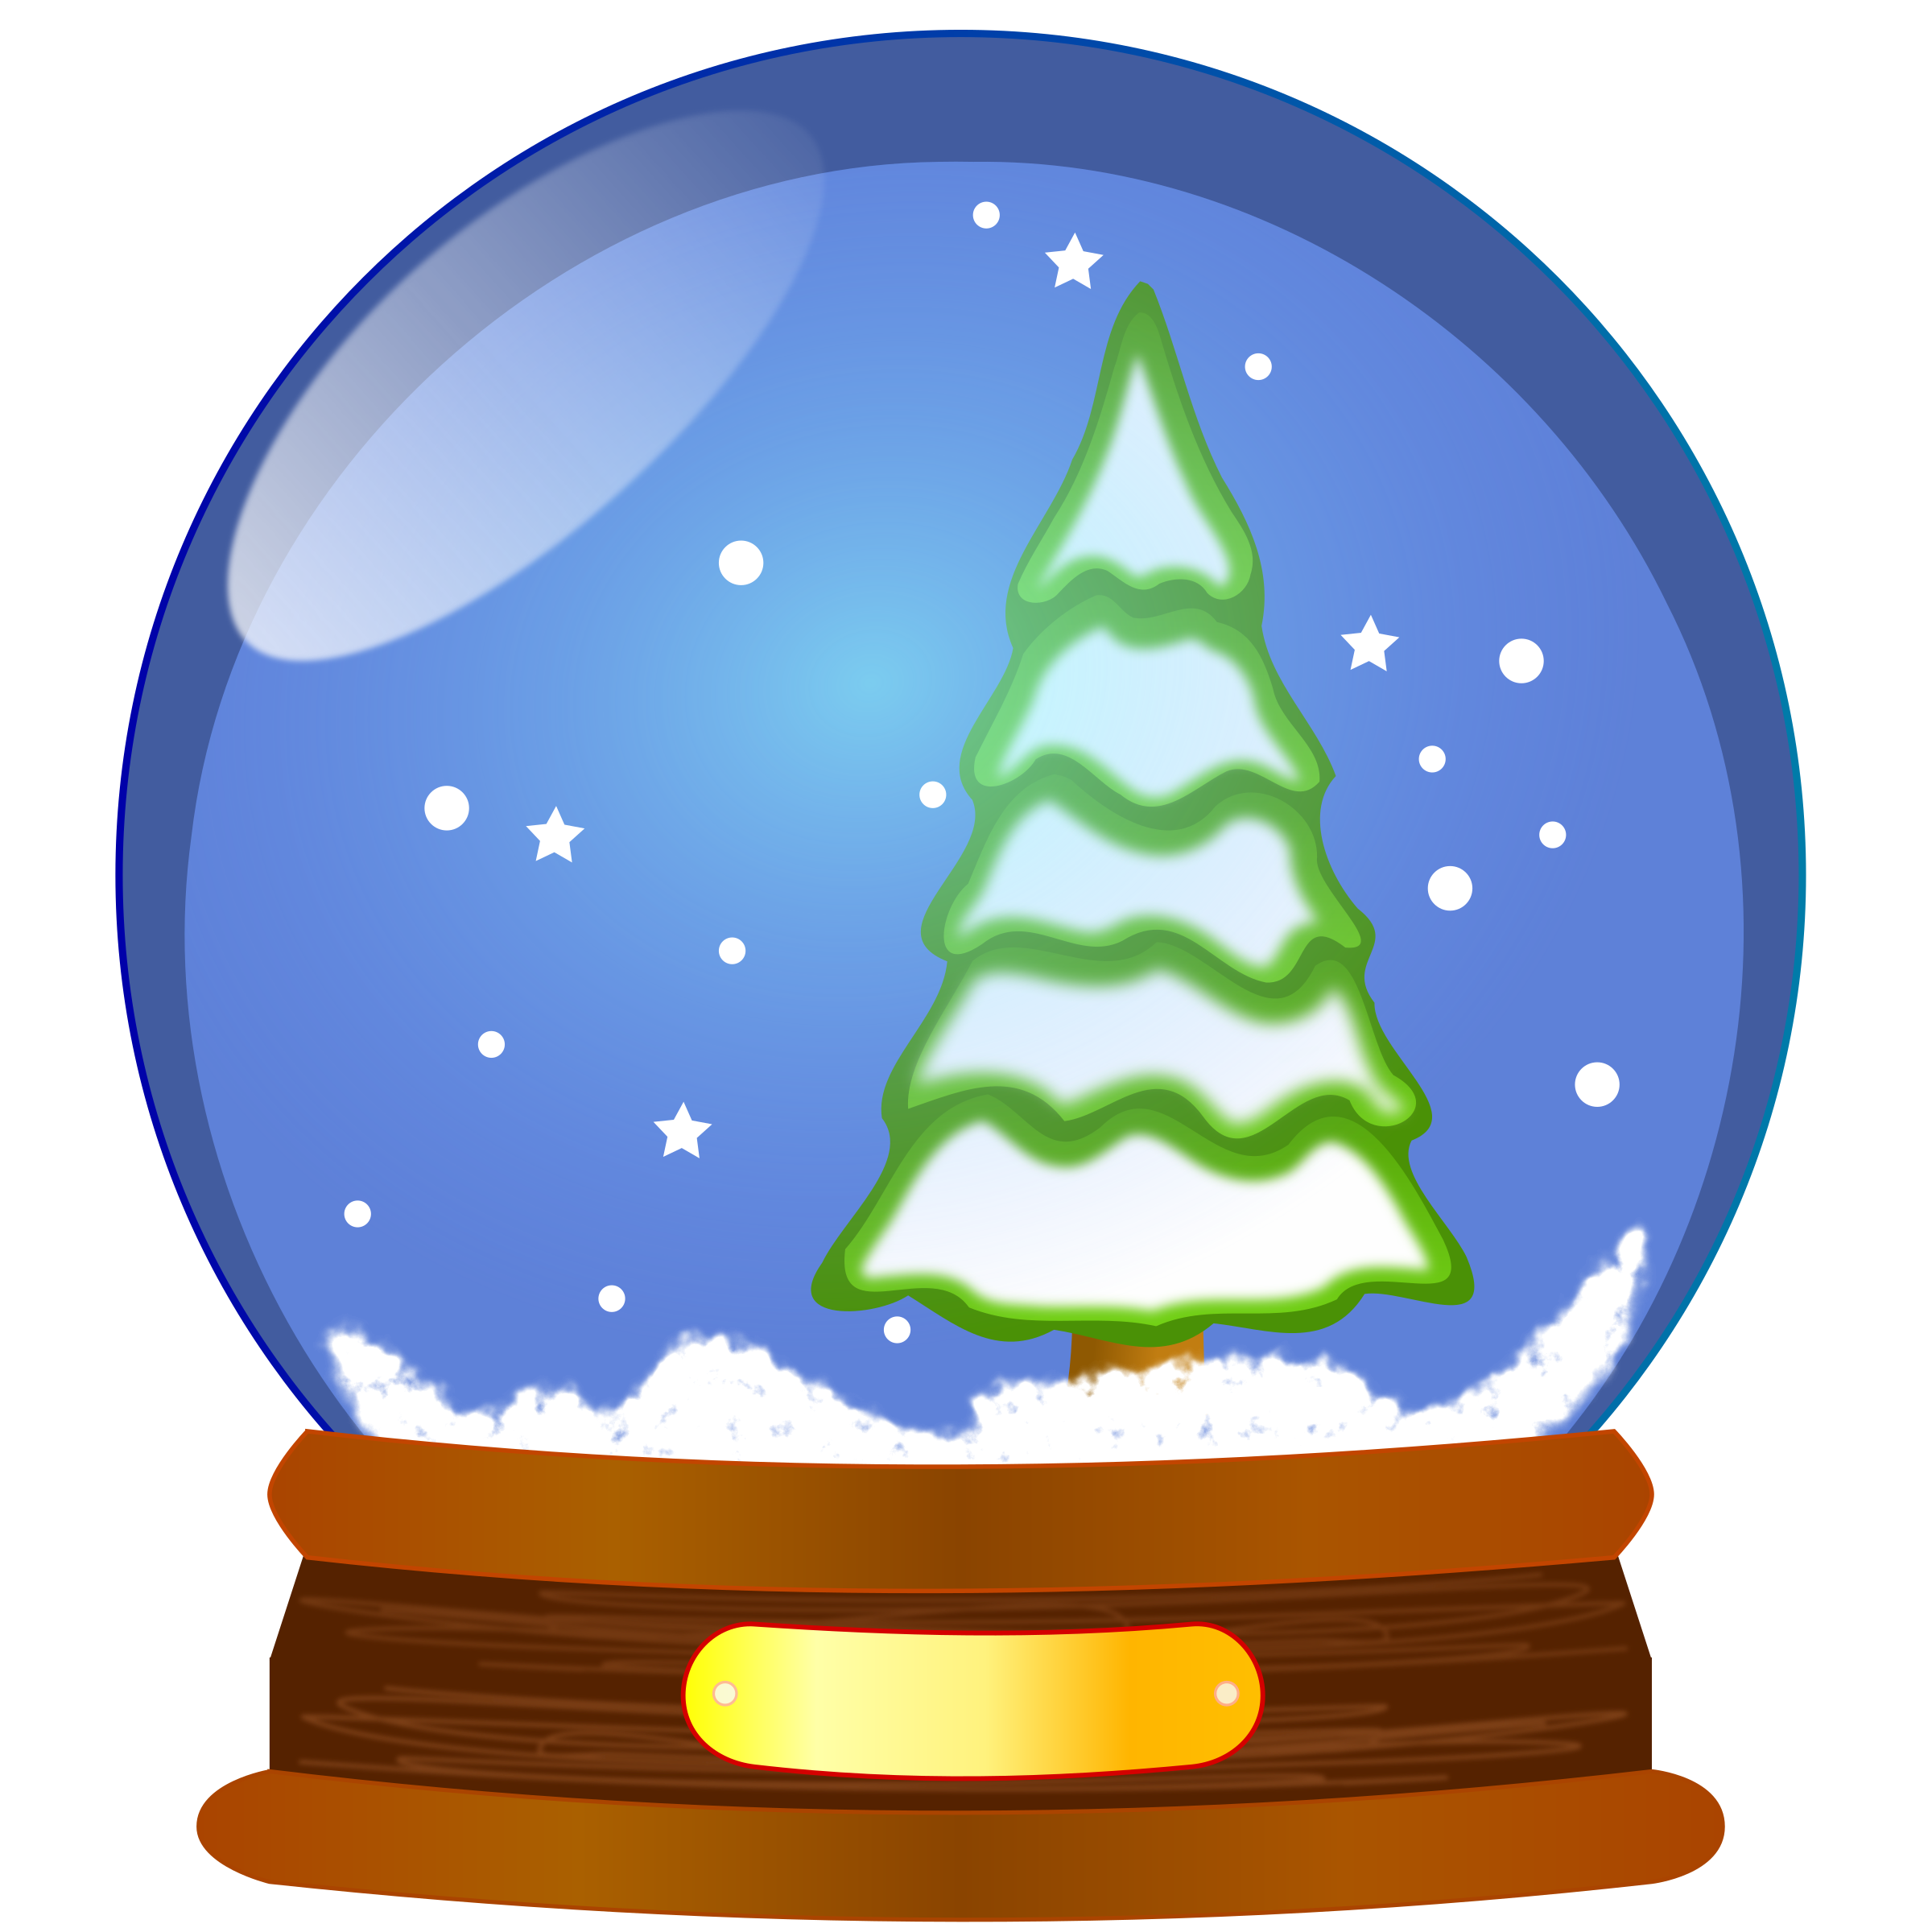 Christmas snow clipart vector library Christmas Snow Globe Clipart at GetDrawings.com | Free for personal ... vector library